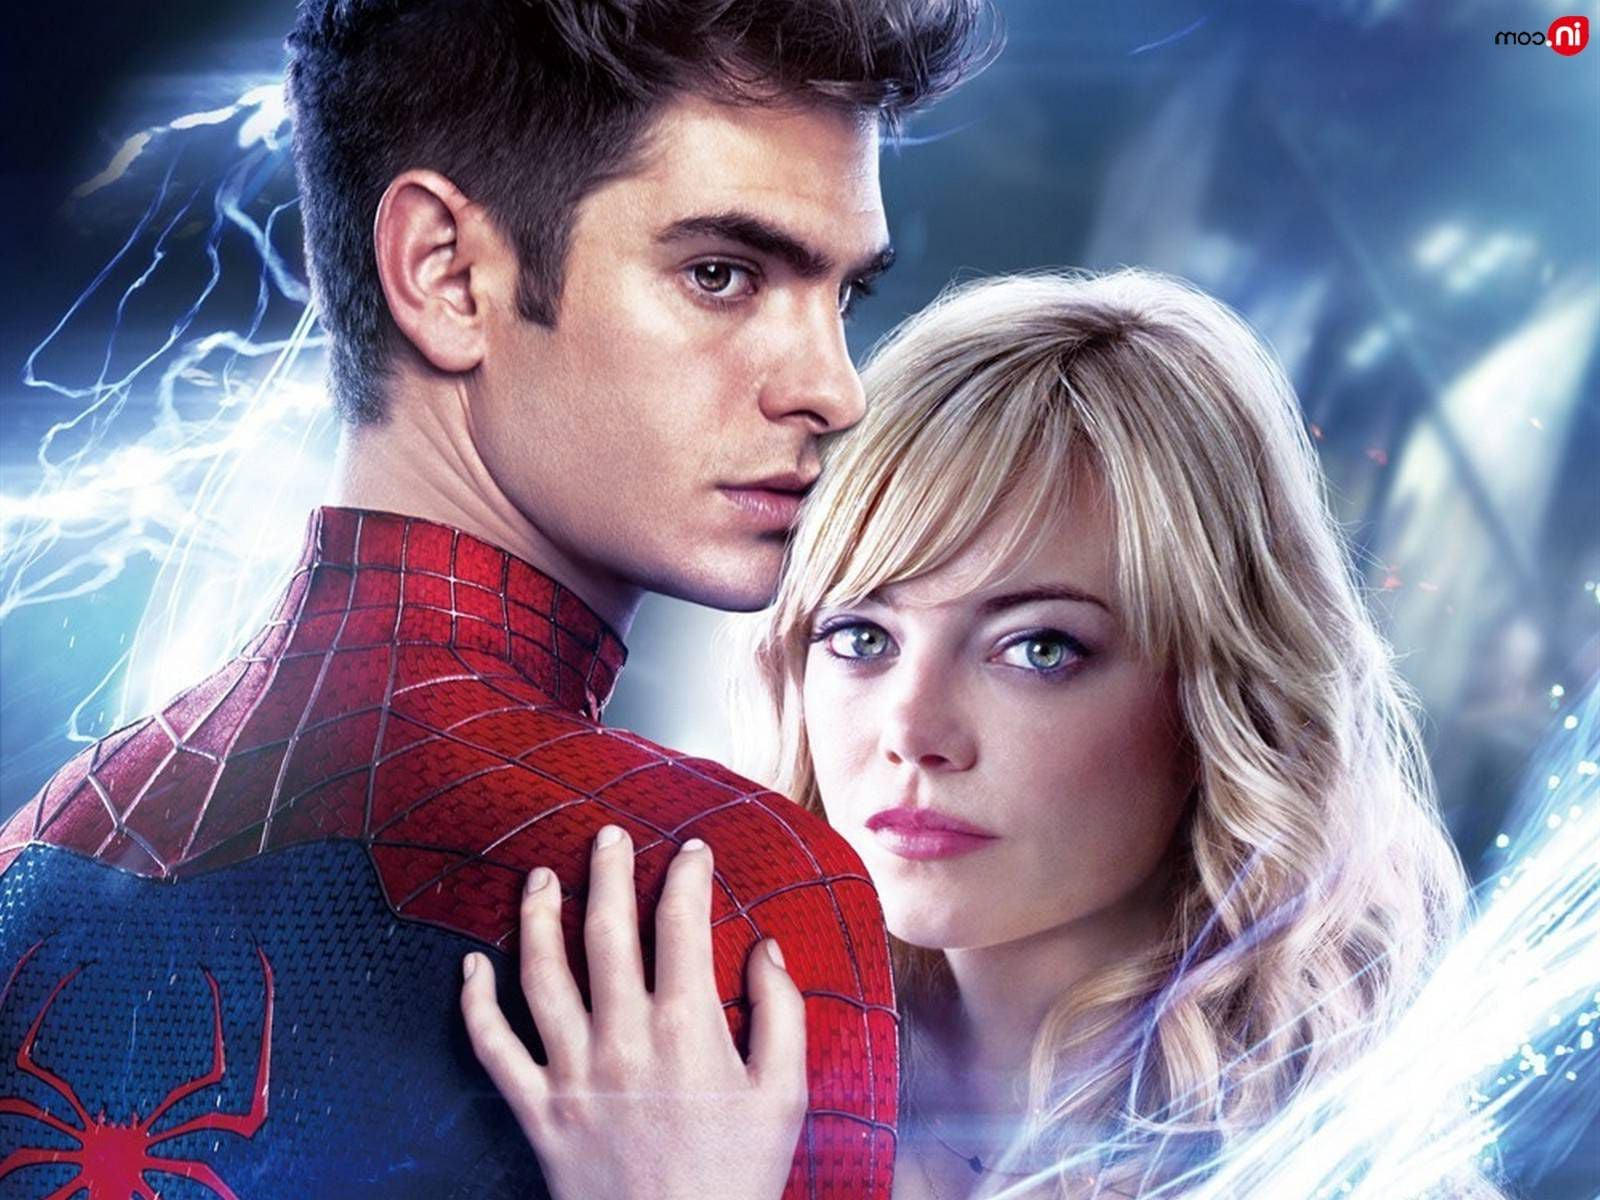 Emma Stone and Andrew Garfield background